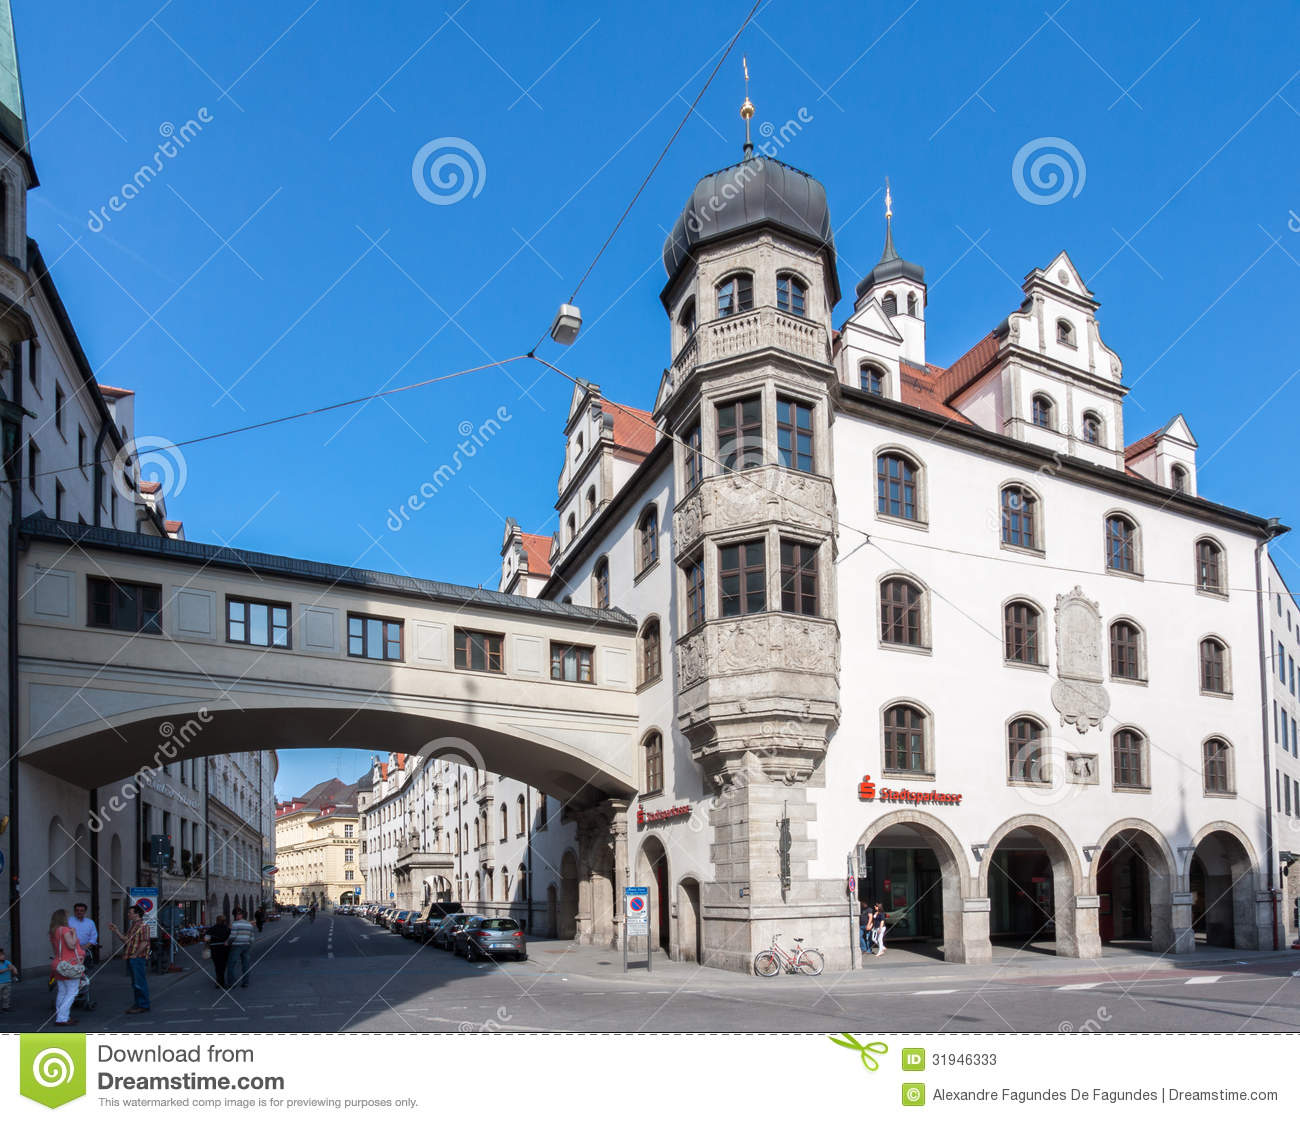 Marienplatz Munich Germany Editorial Stock Photo - Image